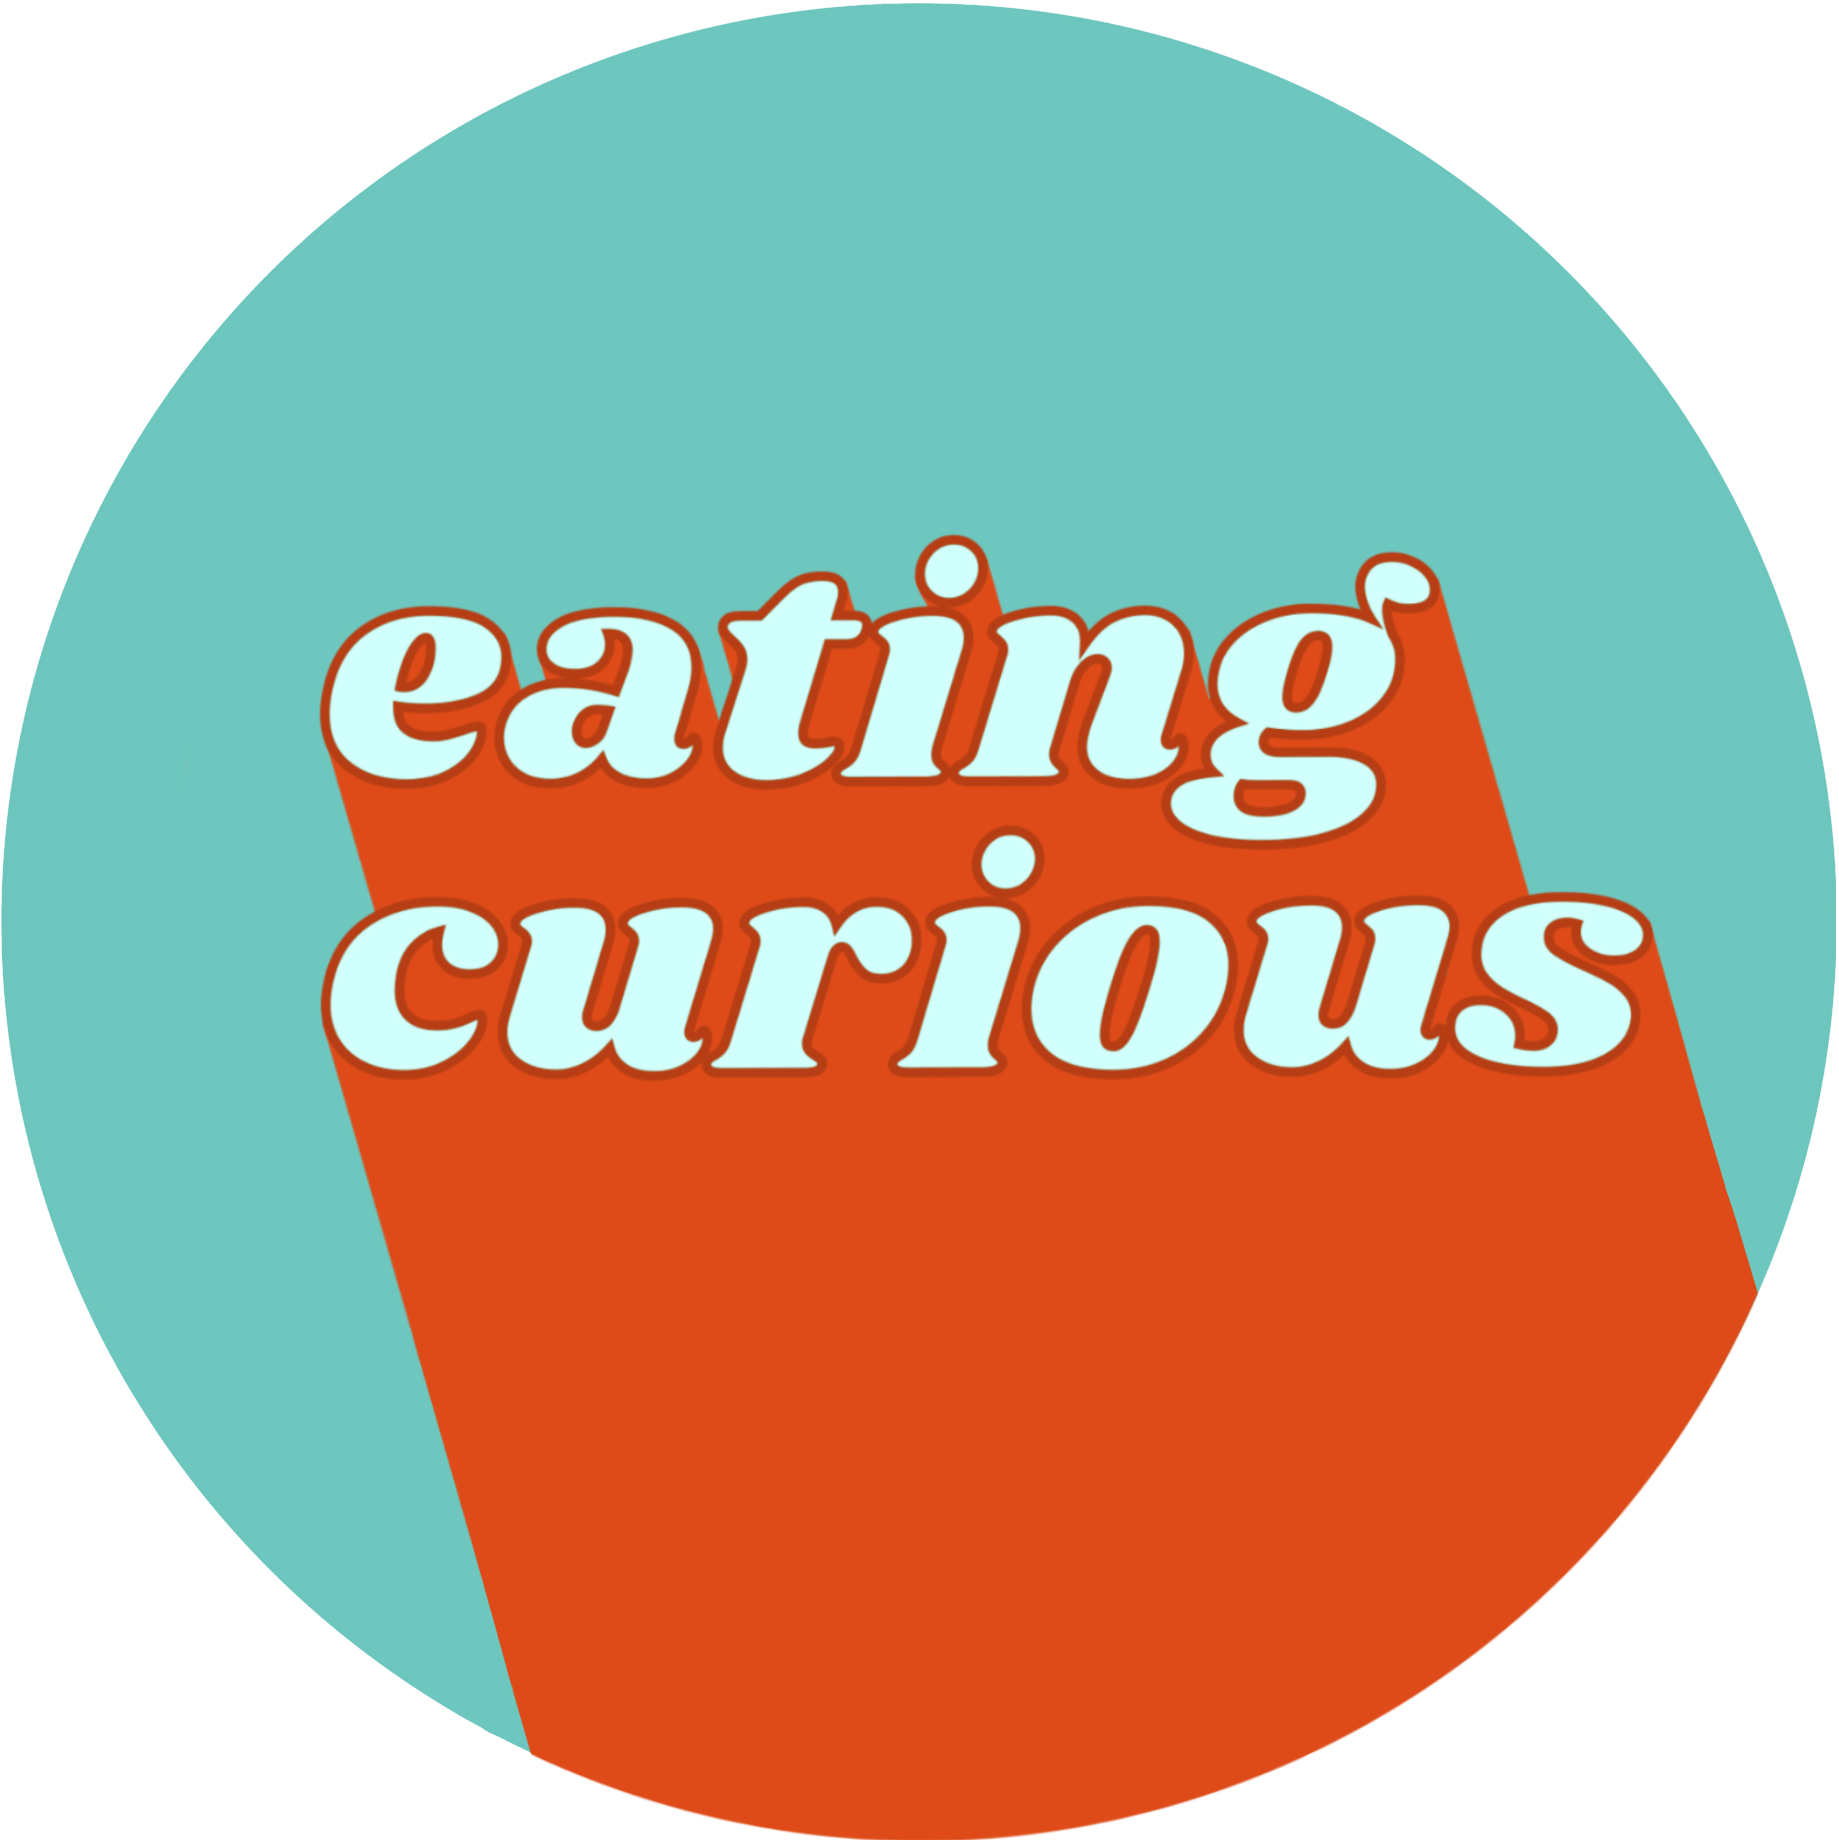 Eating Curious